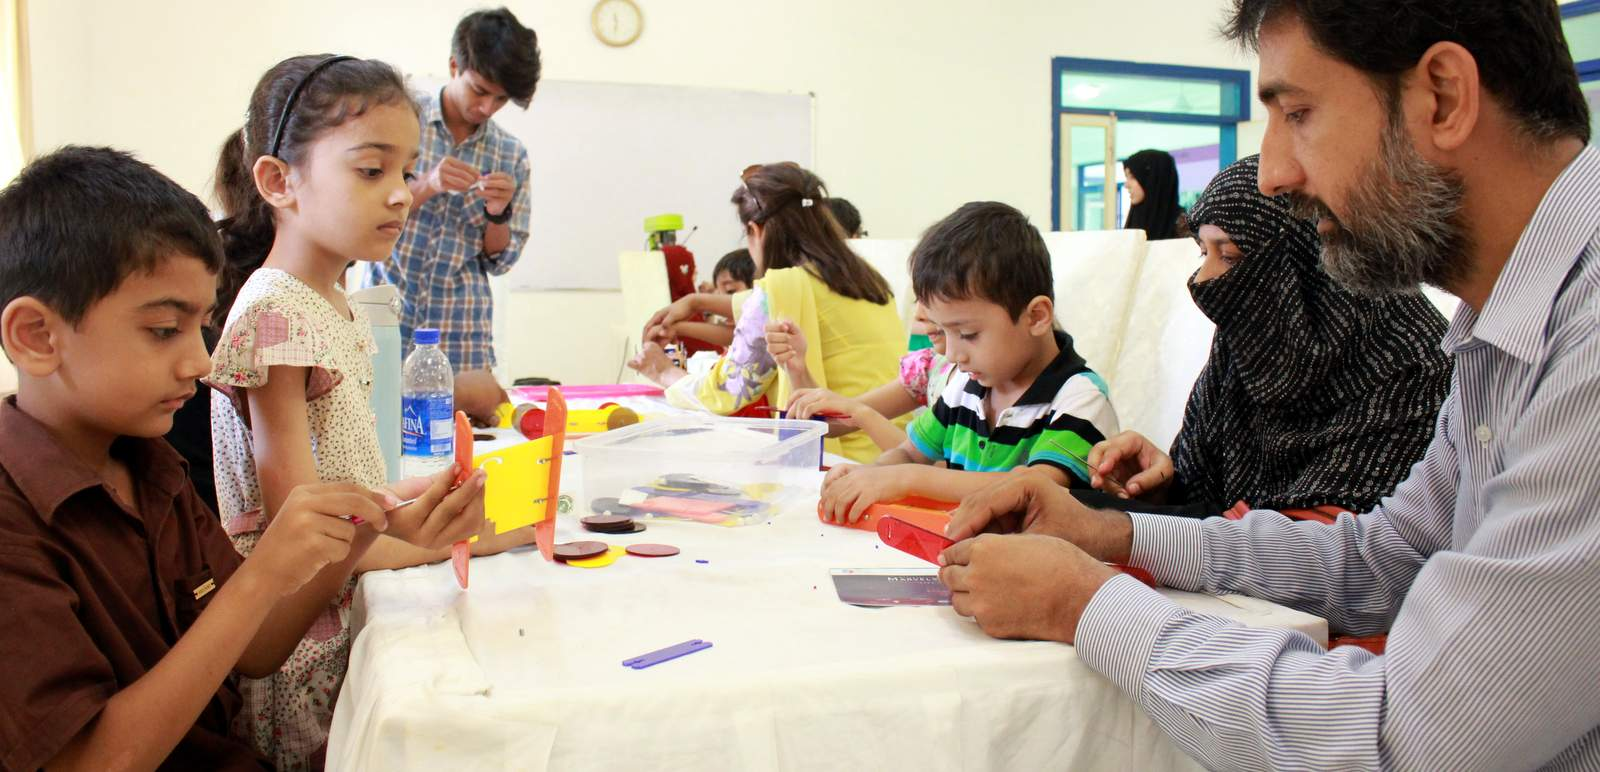 Family Science Workshop